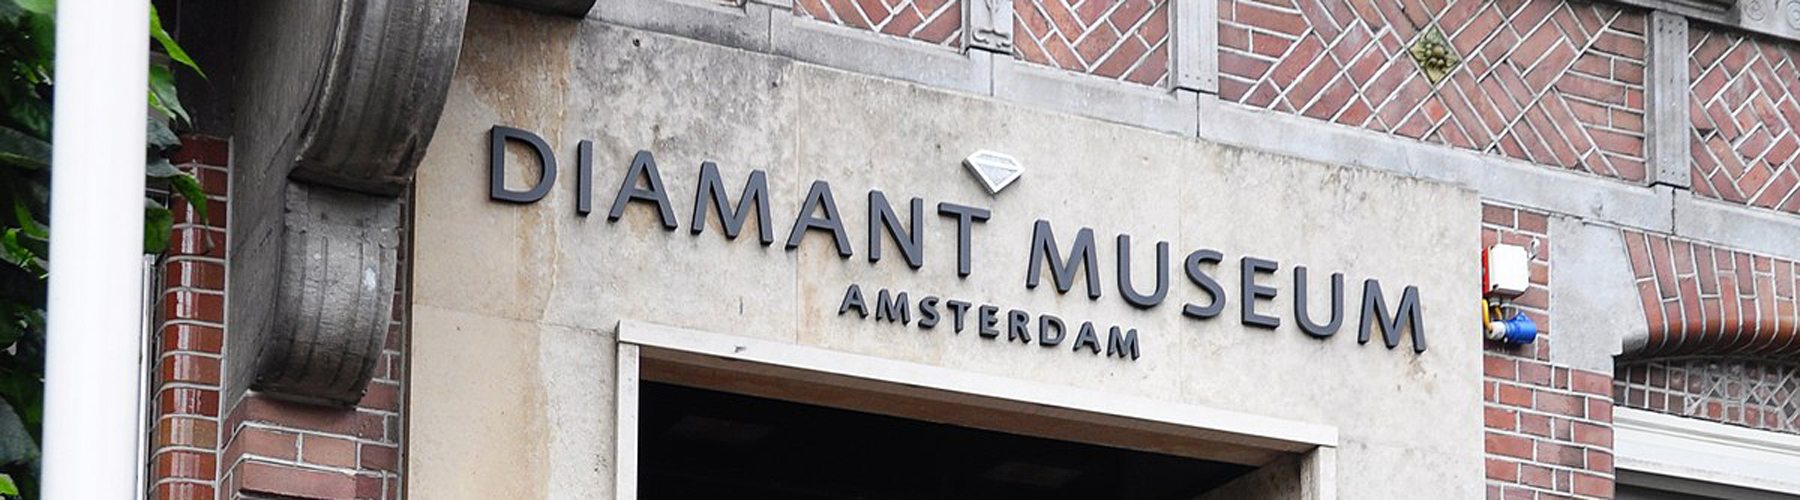 Amsterdam – Hostels close to Diamond Museum Amsterdam. Maps for Amsterdam, Photos and Reviews for each hostel in Amsterdam.